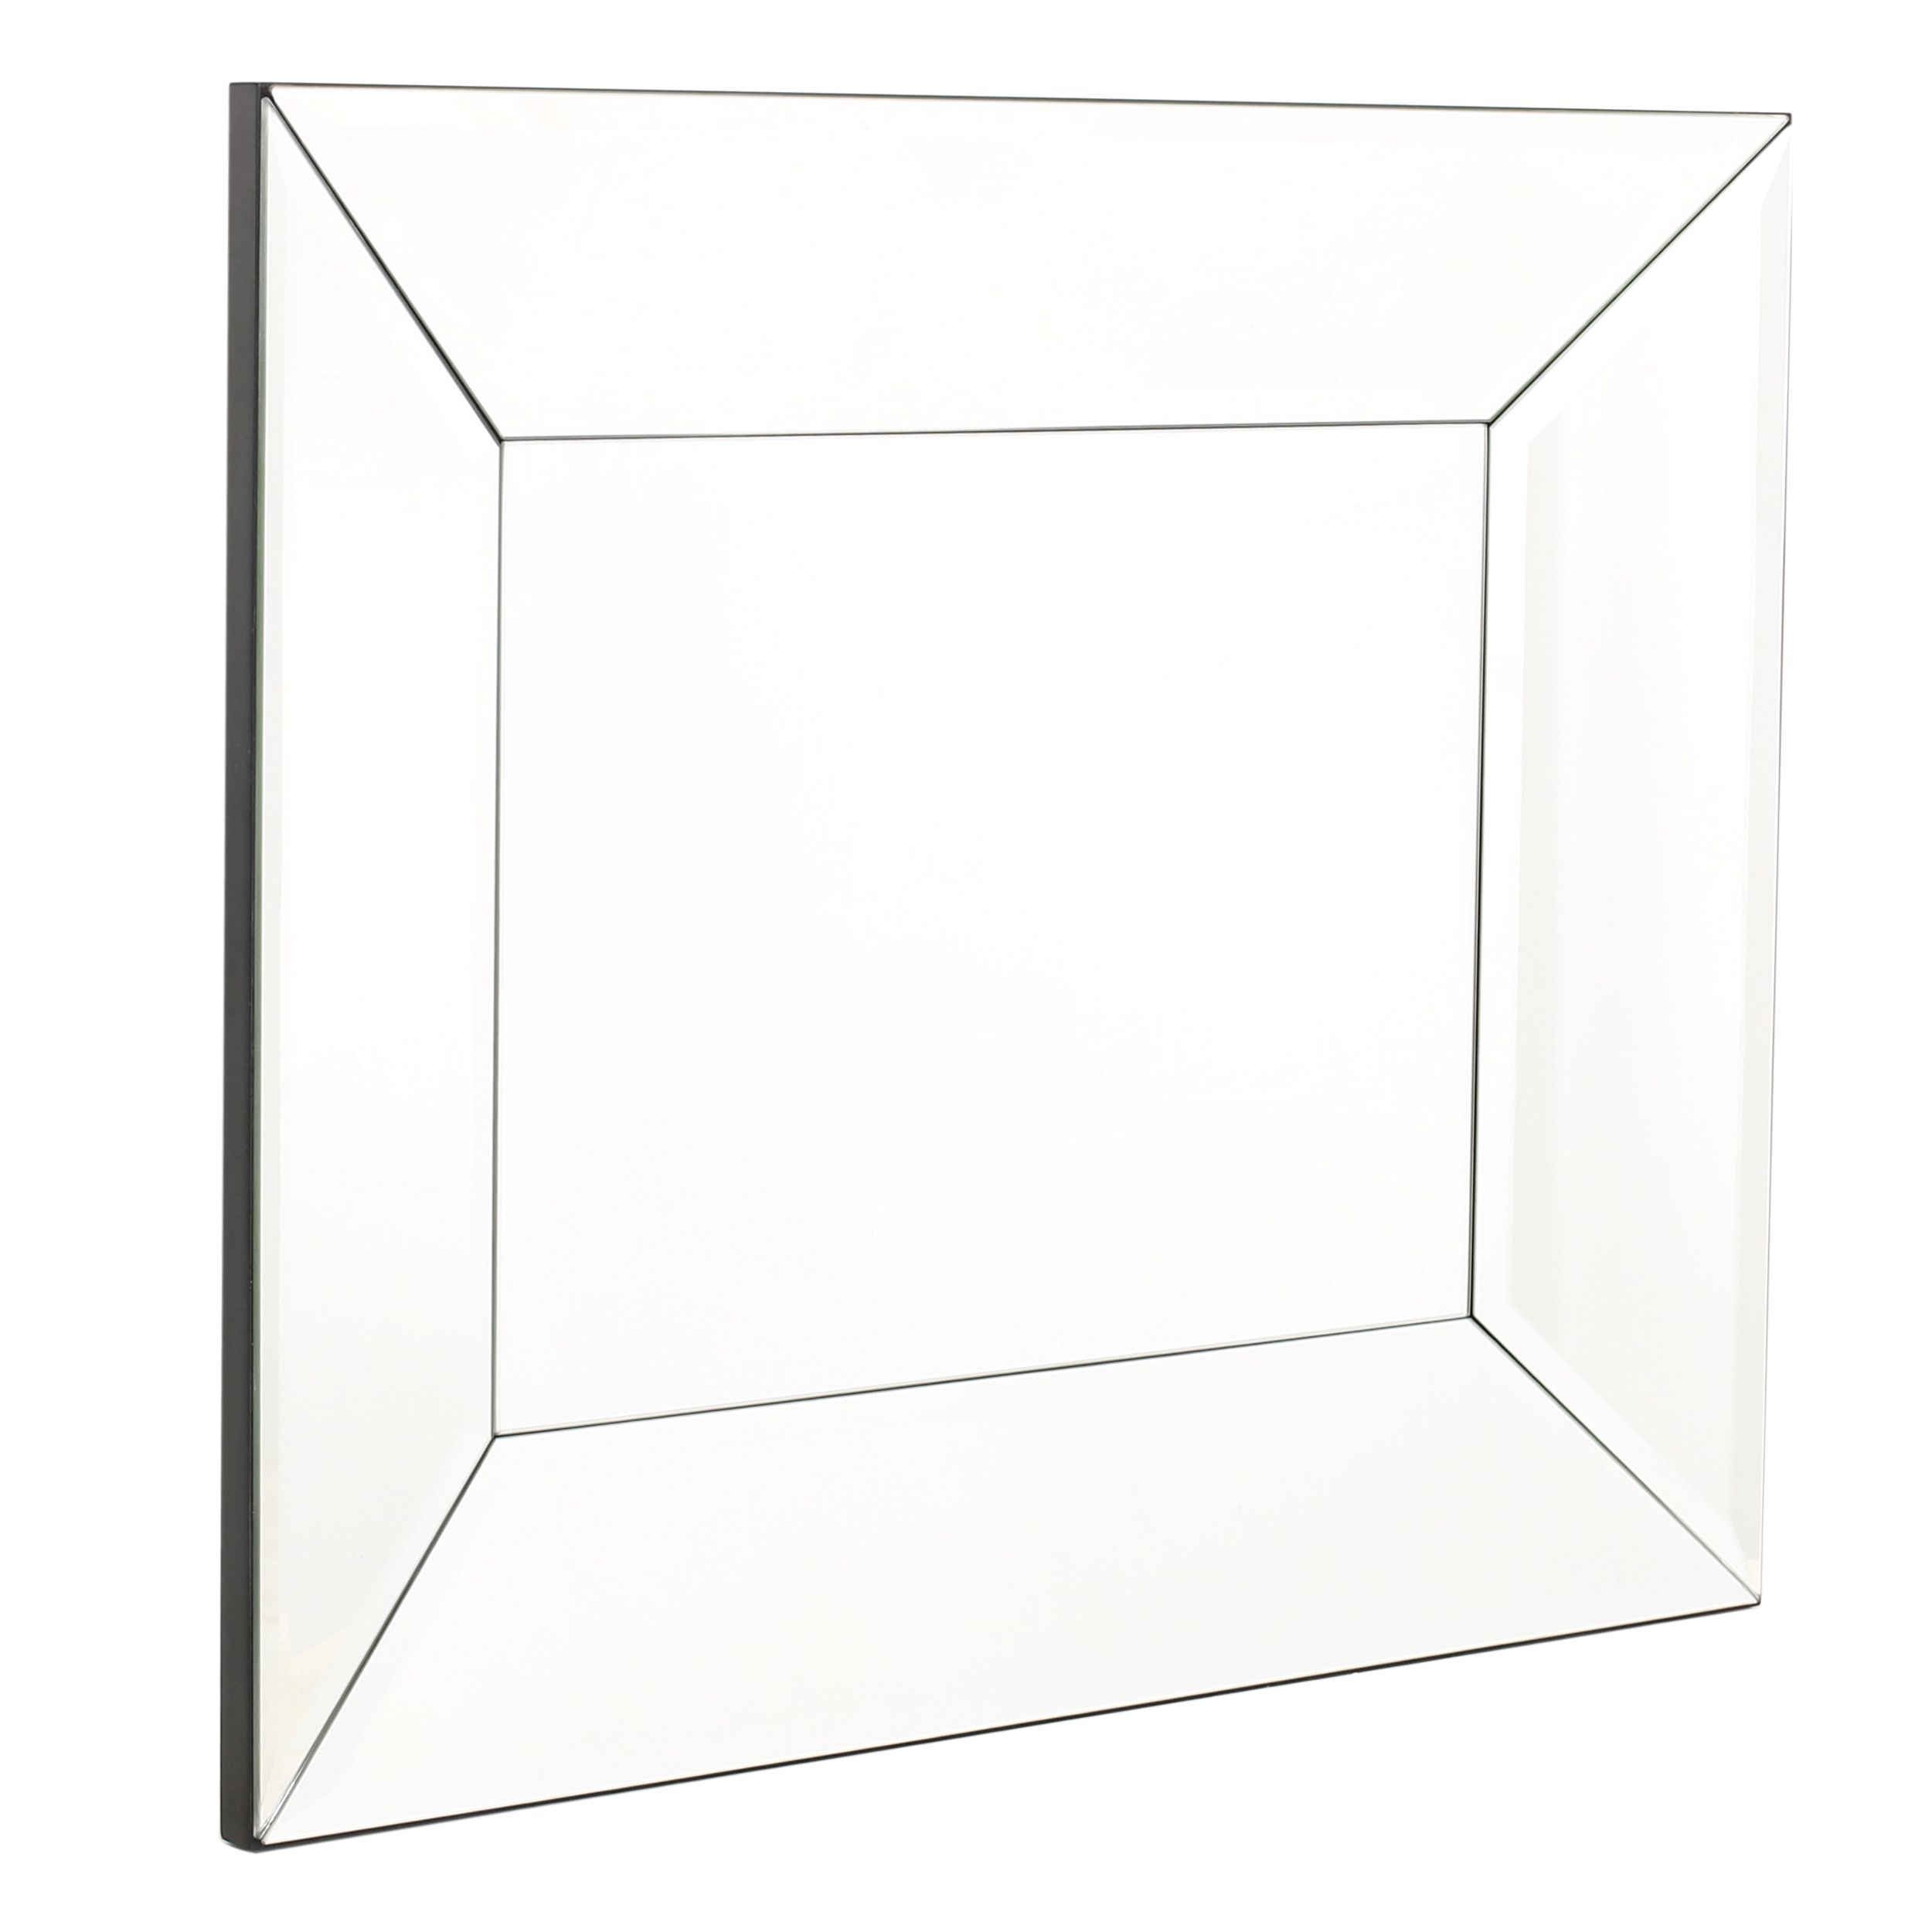 Opheli square wall mirror by christopher knight home silver black